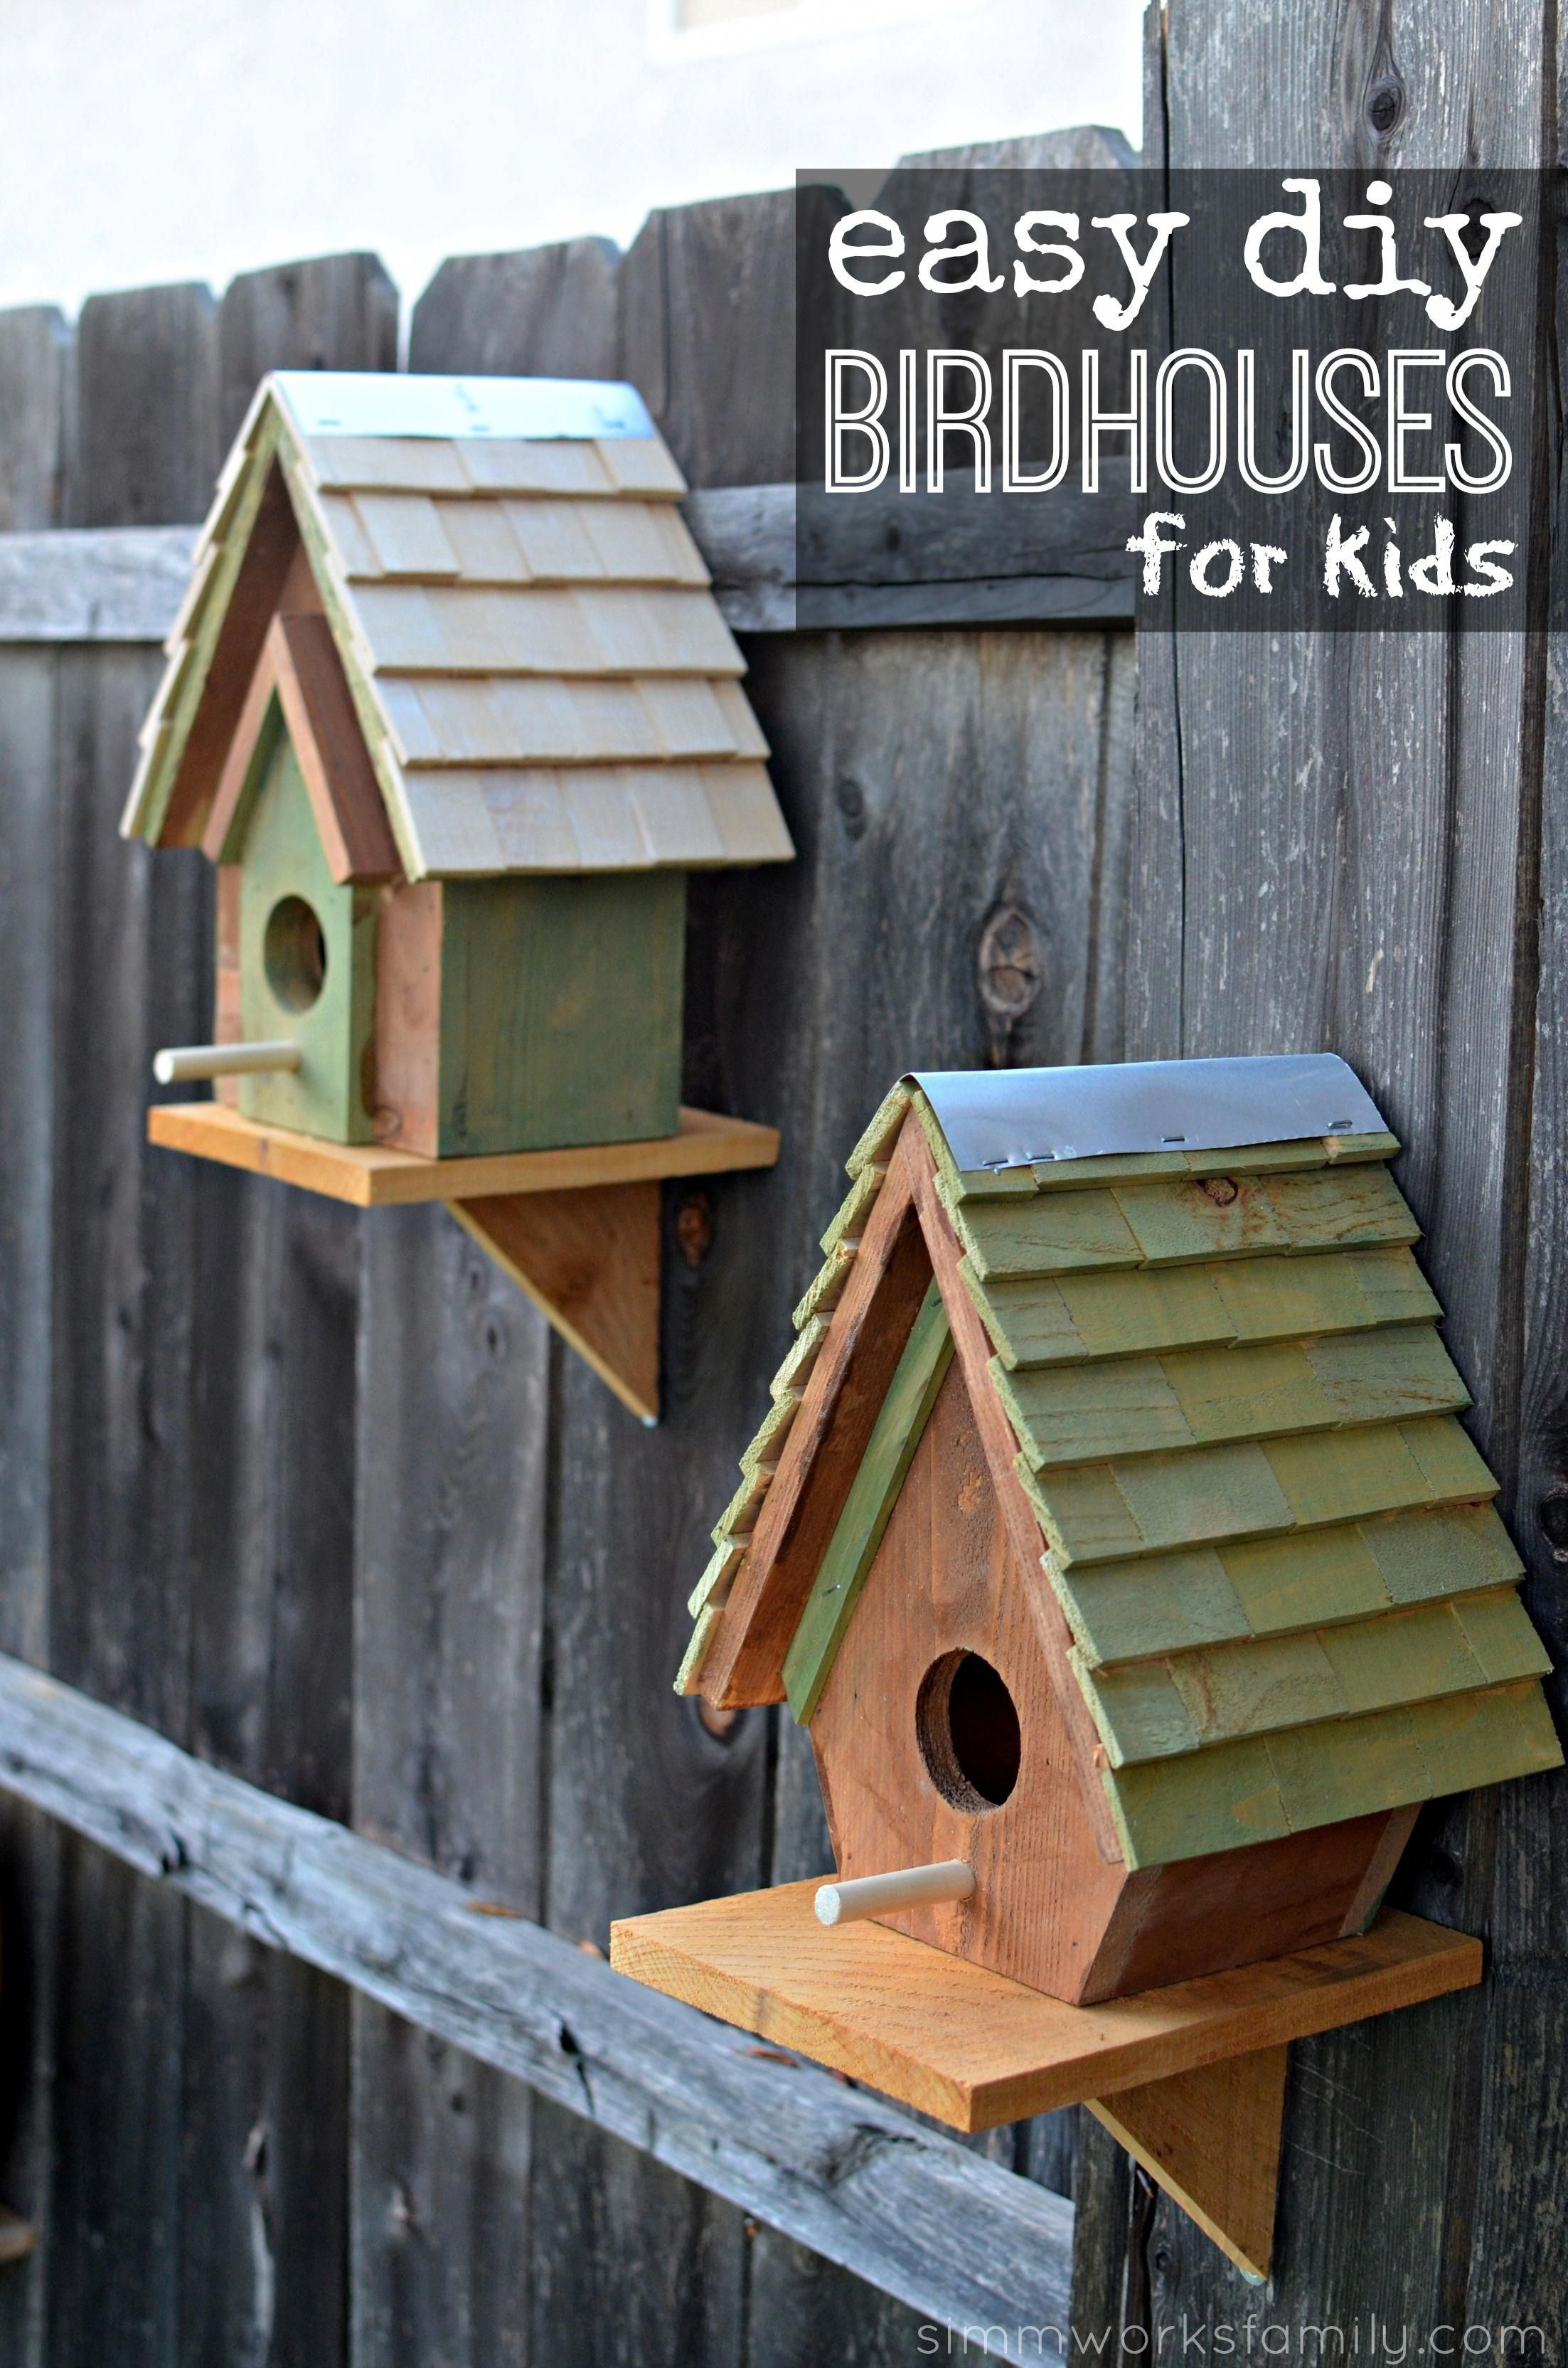 The Perfect Intermediate Project To Get Your Kids Involved In Woodworking These Diy Birdhouses Bird Houses Diy Easy Woodworking Projects Diy Cool Bird Houses